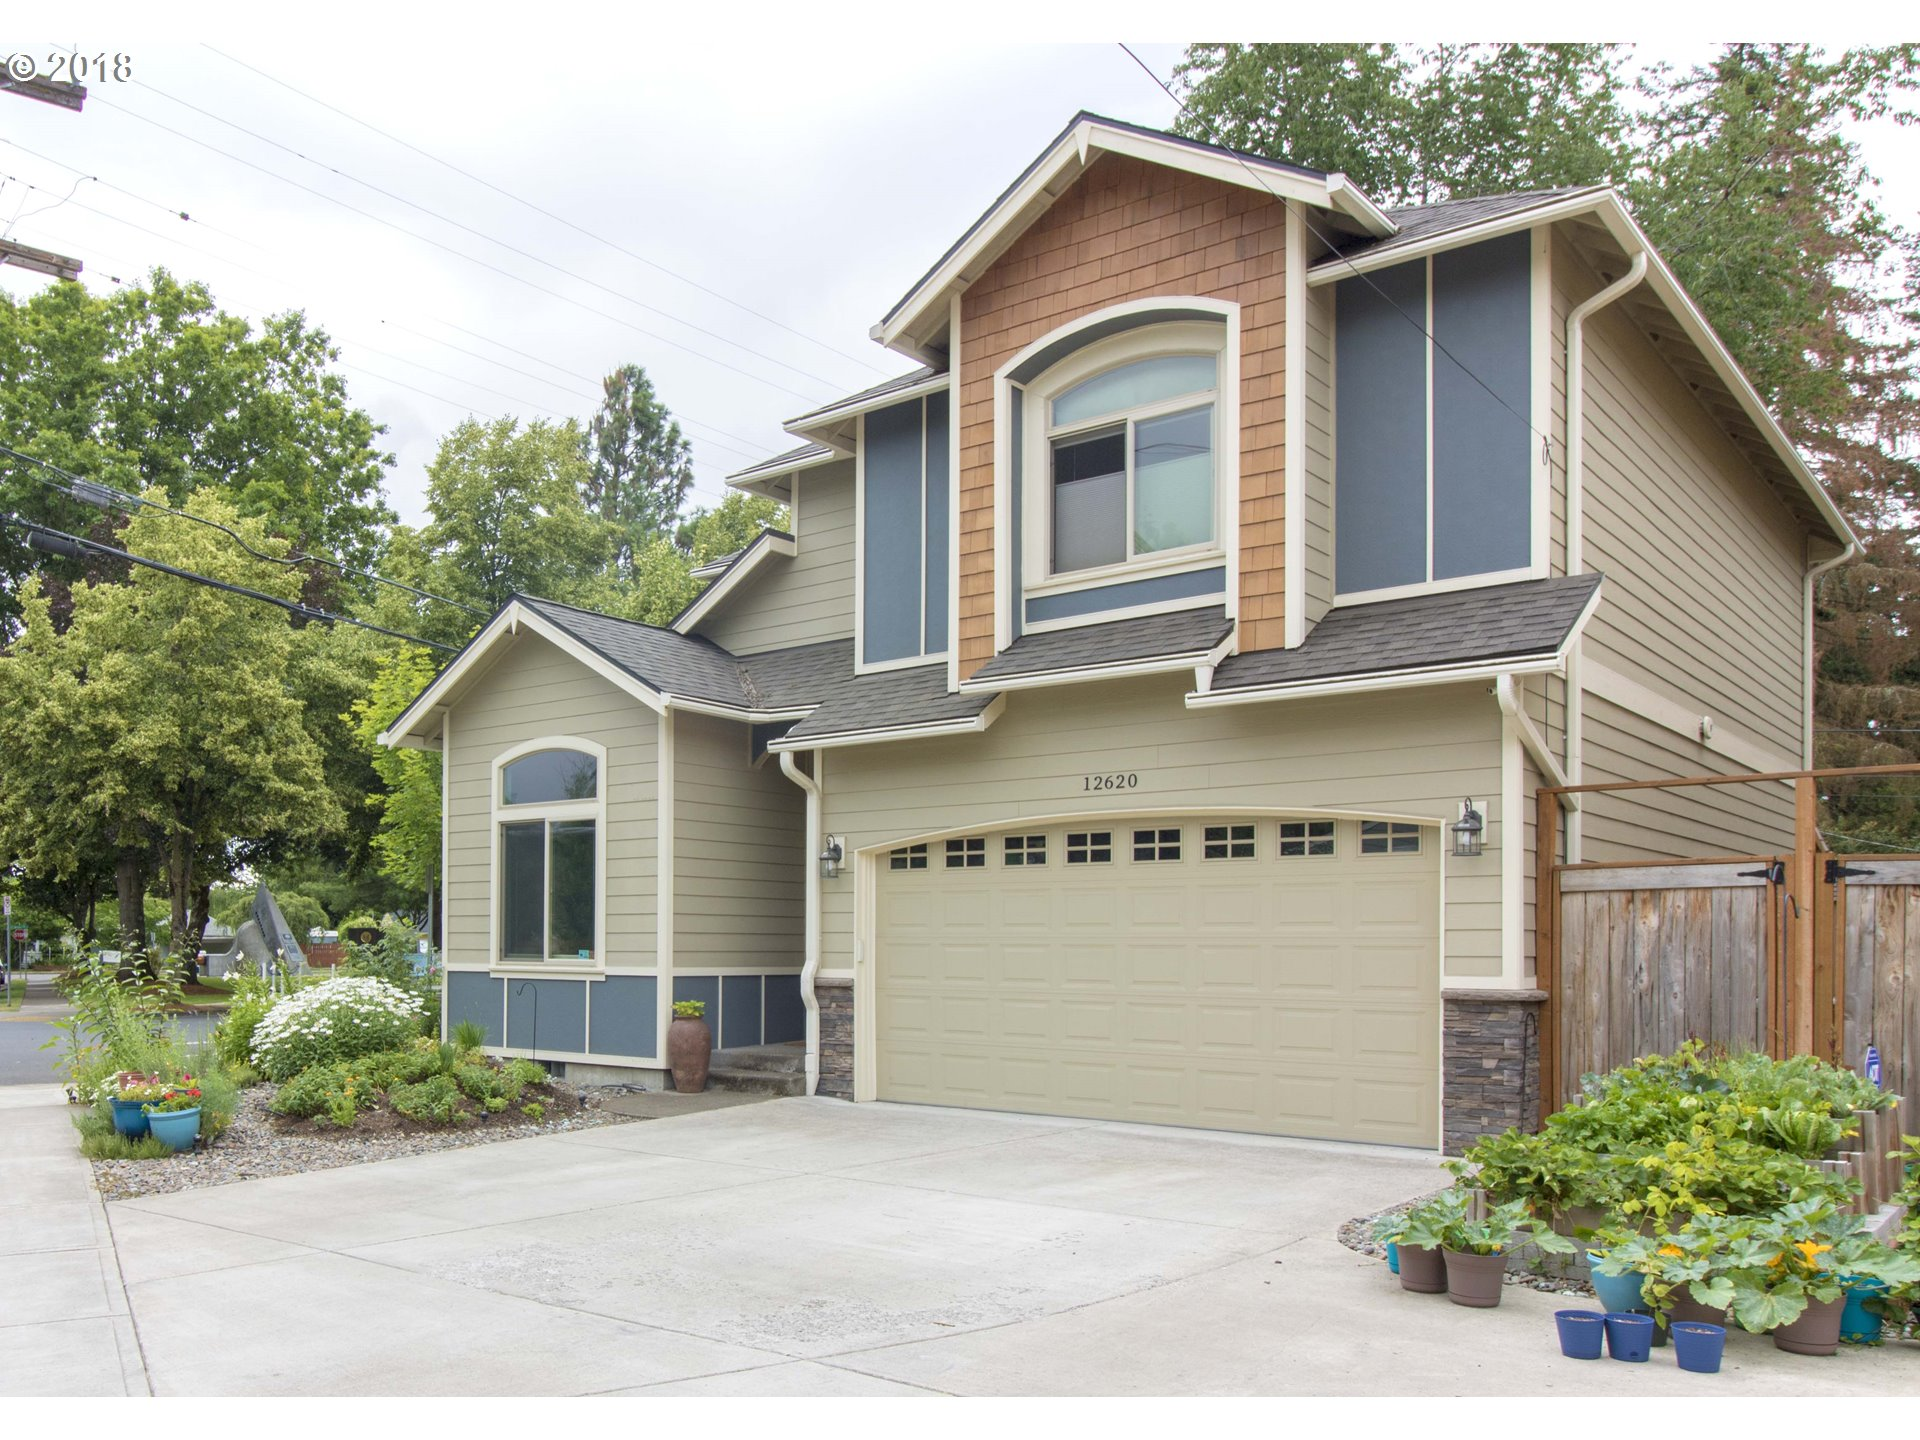 Beautiful almost new Craftsman in coveted Old Town Beaverton-Walk to Farmers Market-Library-Shops-Restaurants-Max! House is gorgeous! High ceilings-Hardwood floors-Open floor plan w/Great Room & private back yard! Kitchen has gas range-Stainless appliances-Pantry-Slab granite-Eat bar-Open to living-dining. Large living dining area  w/slider to patio + yard.Sunny & bright Den off entry! Master suite is huge! Beautifully landscaped yard!